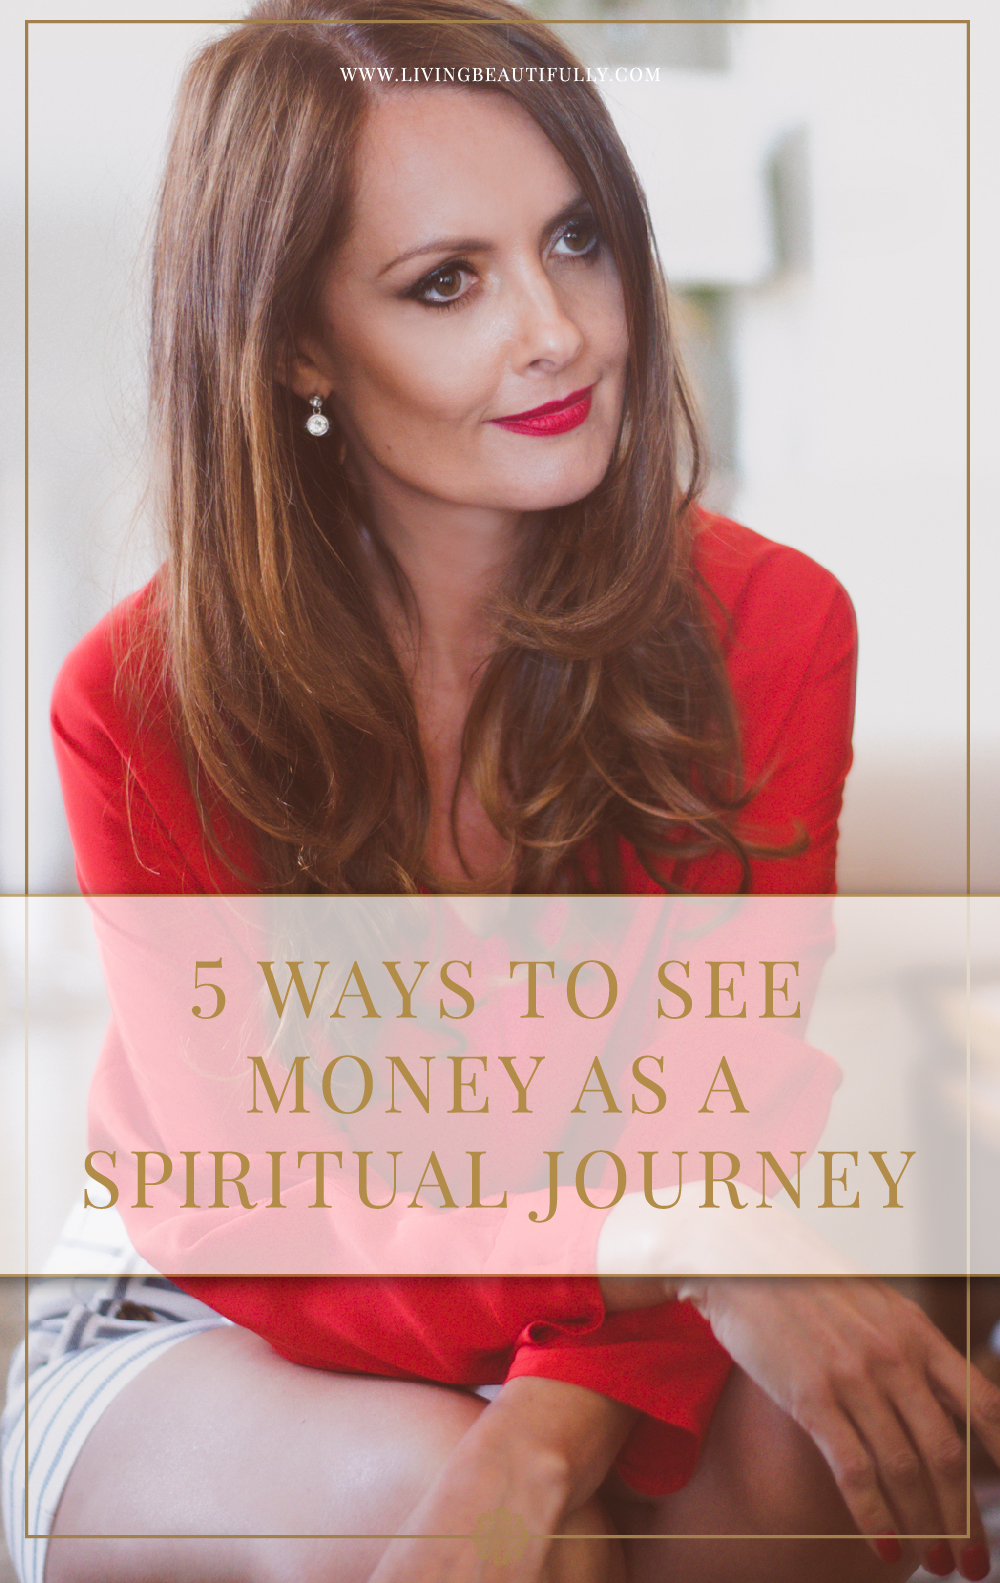 5 Ways to see Money as a Spiritual Journey